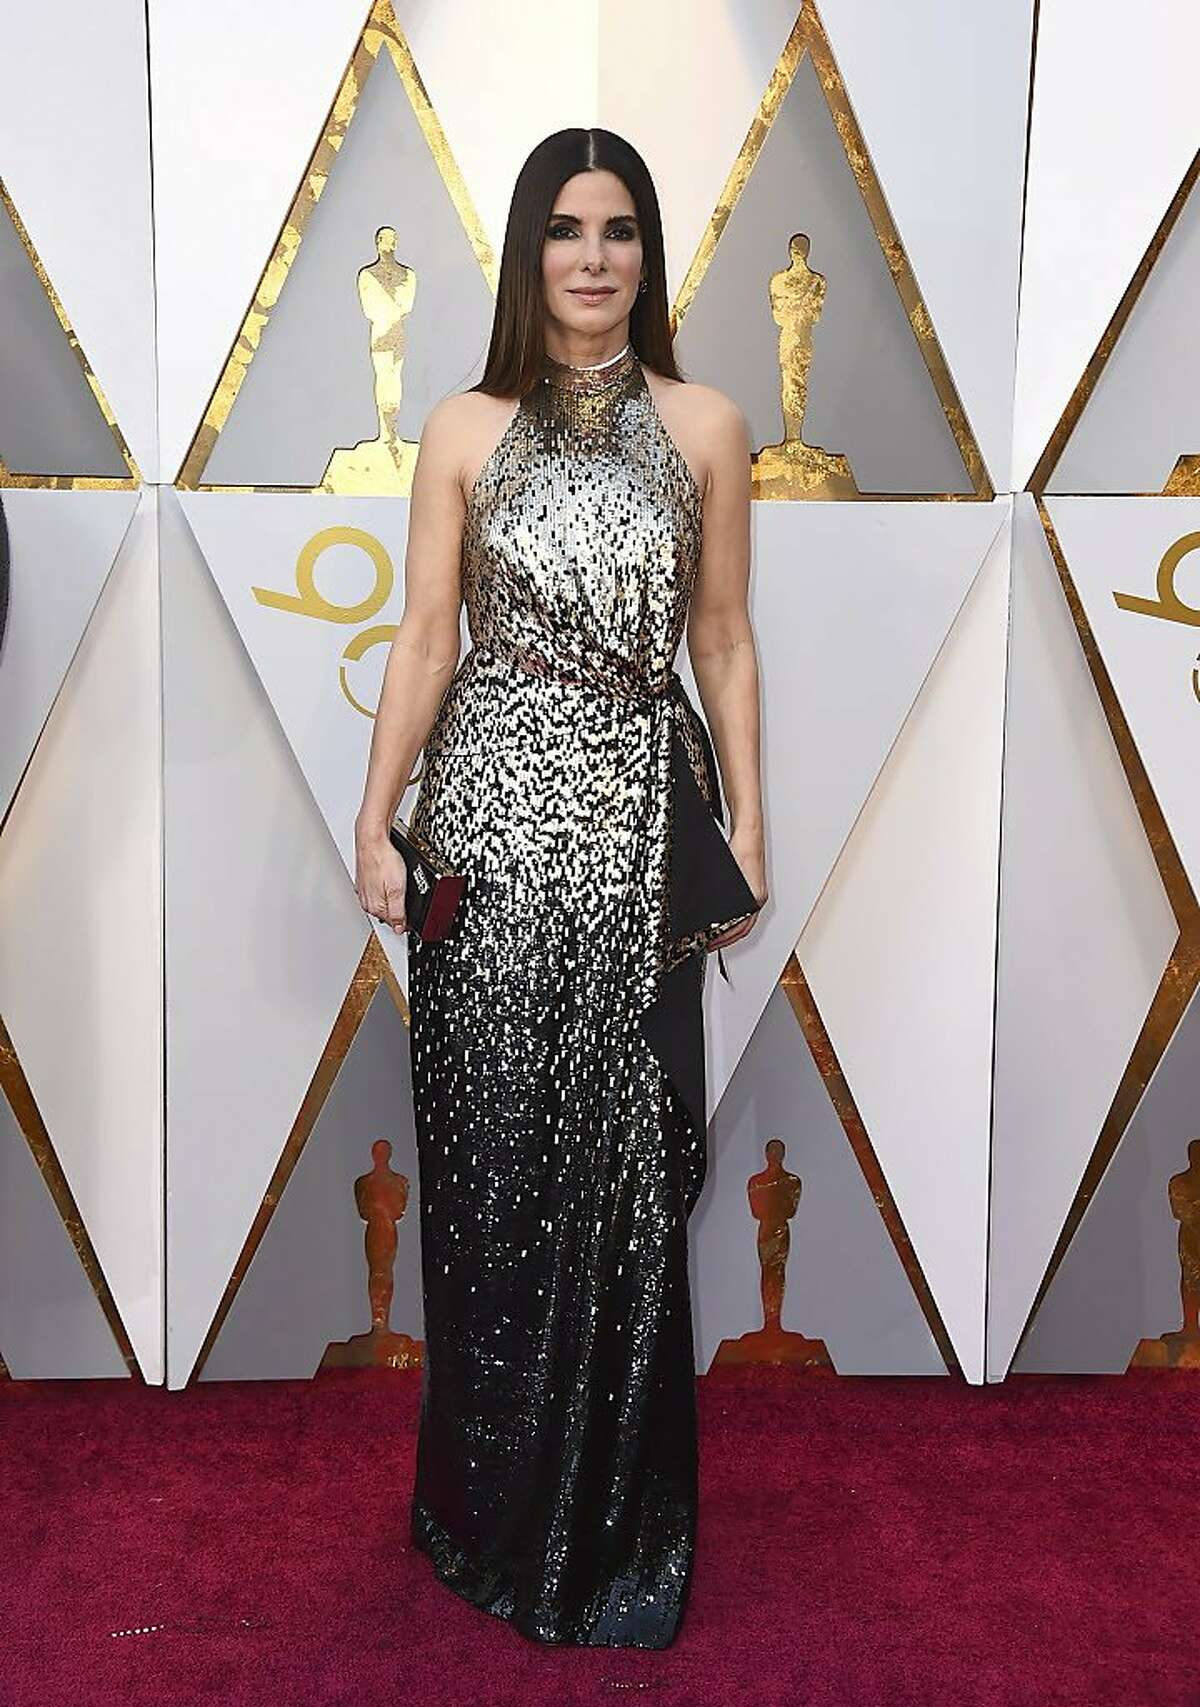 Sandra Bullock arrives at the Oscars on Sunday, March 4, 2018, at the Dolby Theatre in Los Angeles. (Photo by Jordan Strauss/Invision/AP)